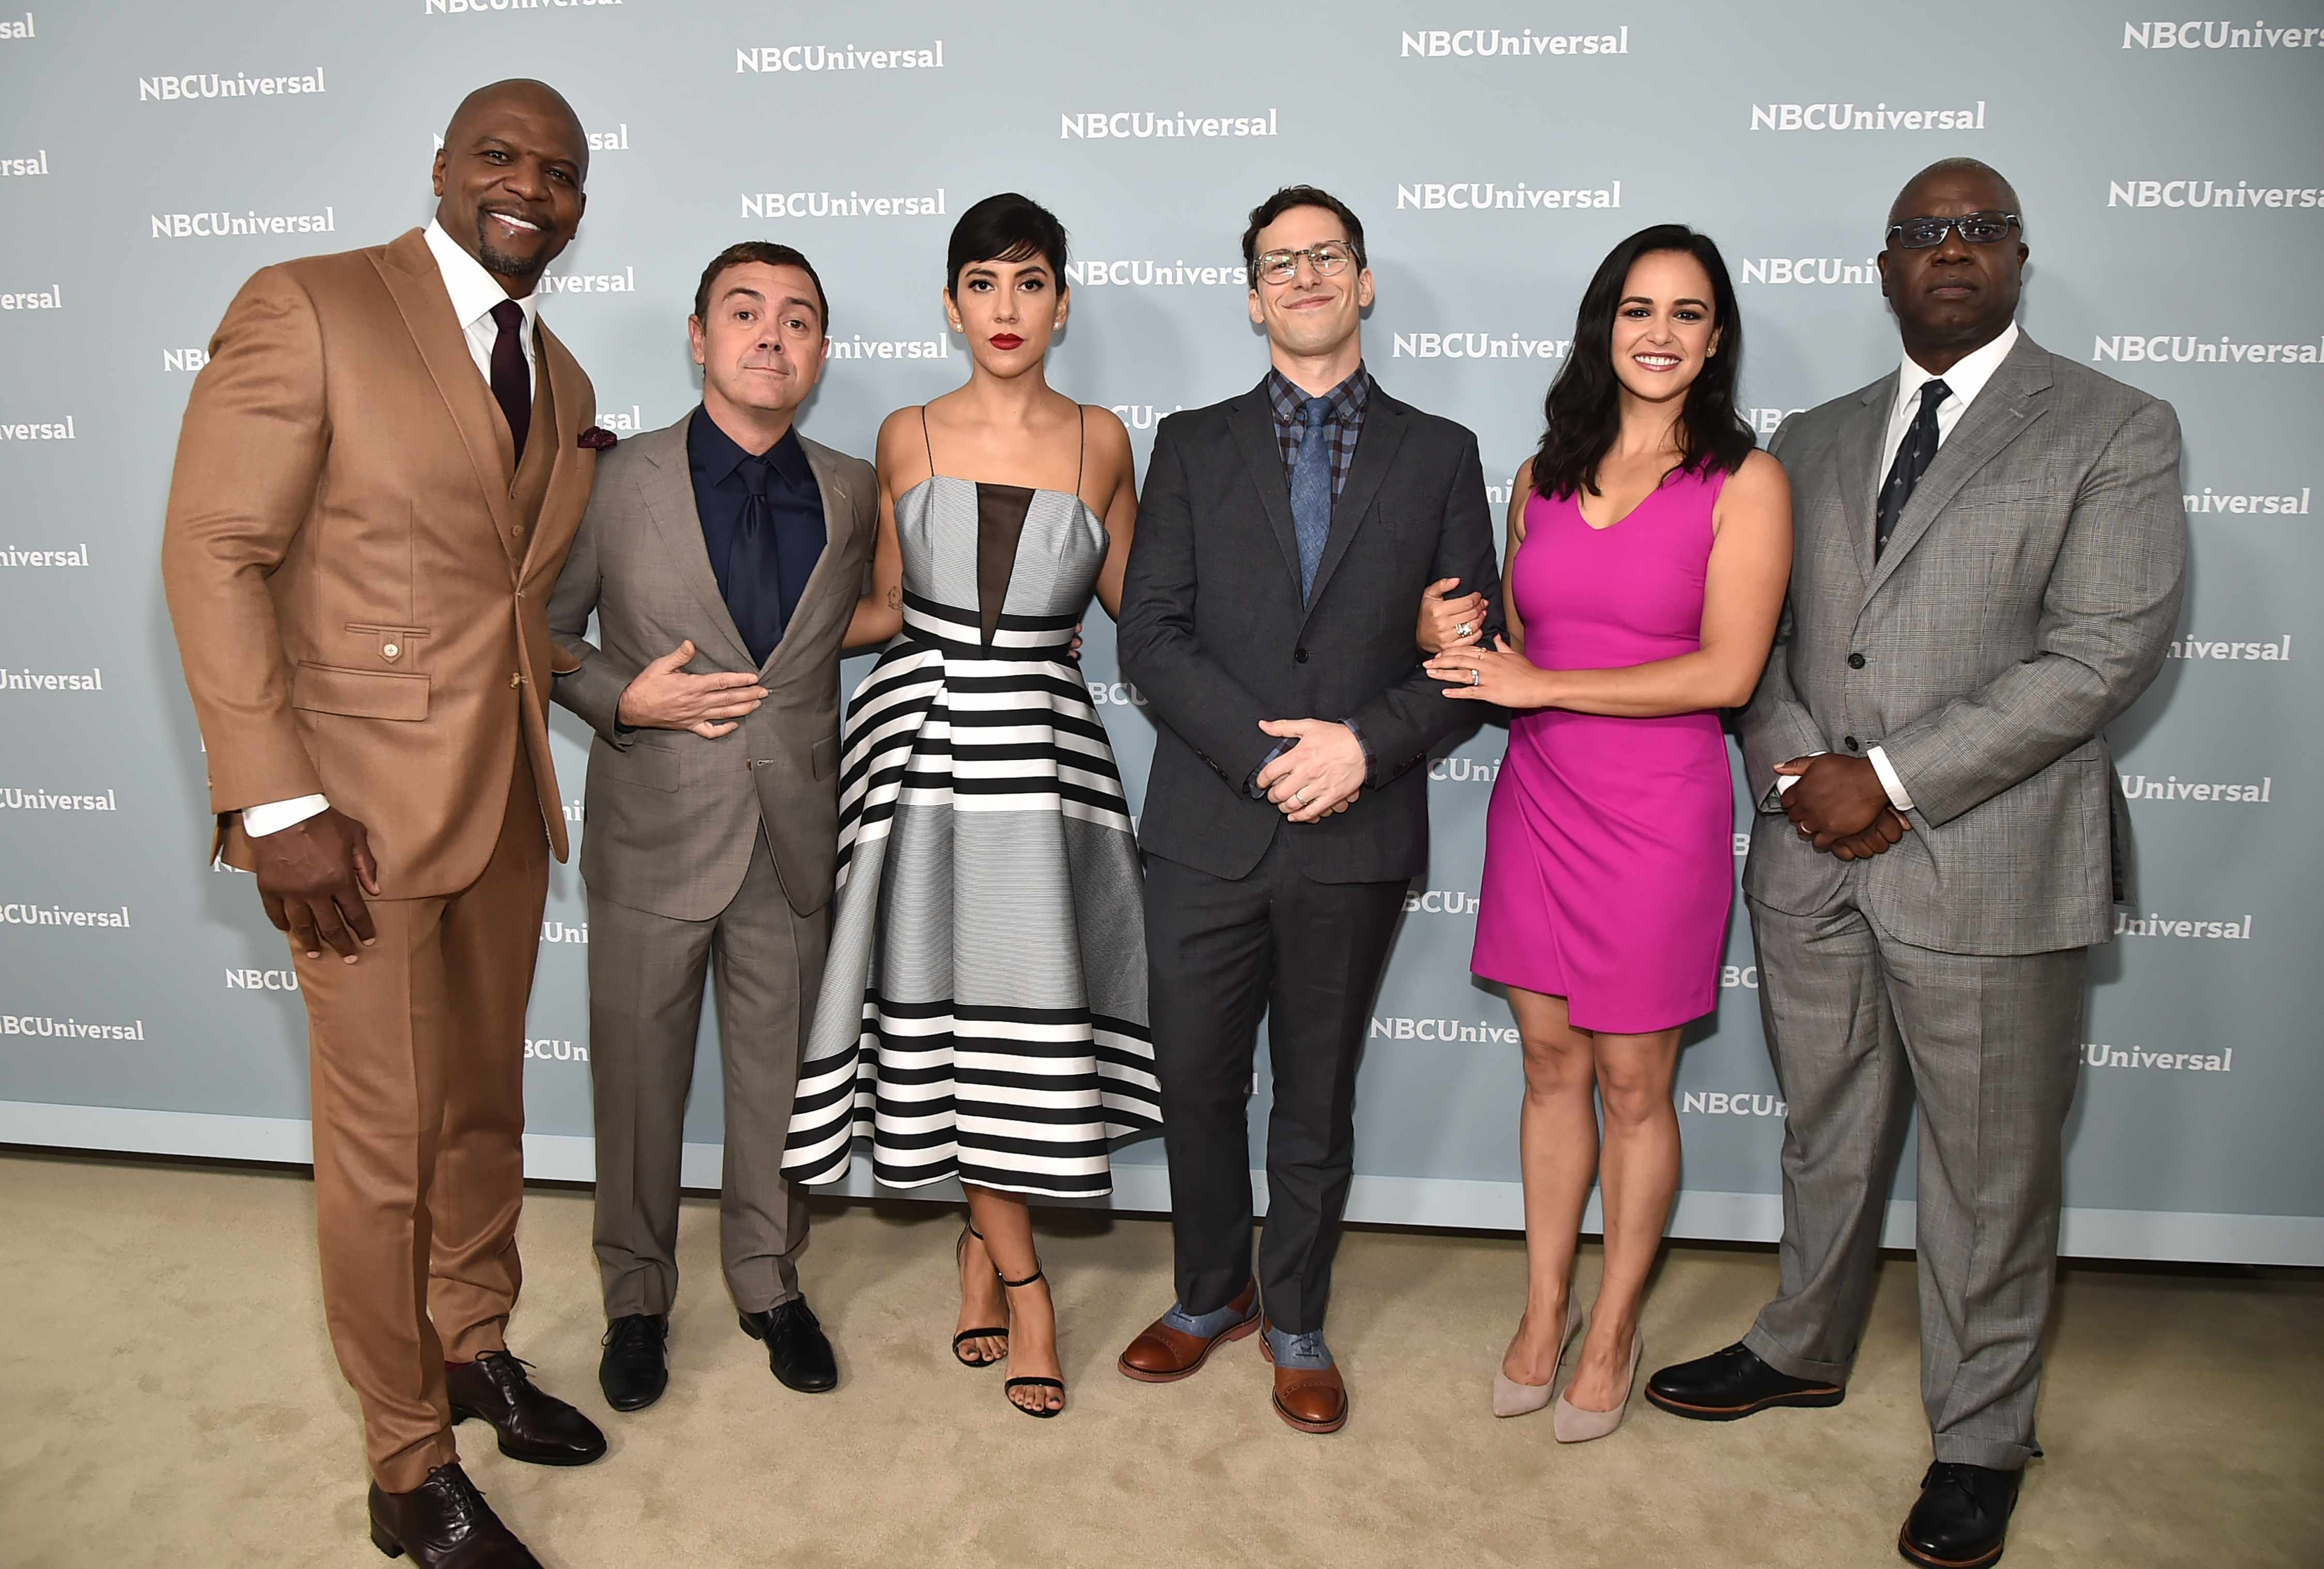 """NBCUNIVERSAL UPFRONT EVENTS --  2018 NBCUniversal Upfront in New York City on Monday, May 14, 2018 -- Red Carpet -- Pictured: Terry Crews, Joe Lo Truglio, Stephaine Beatriz, Andy Samberg, Melissa Fumero, Andre Braugher, """"Brooklyn Nine-Nine"""" on NBC-- (Photo by: Theo Wargo/NBCUniversal/NBCU Photo Bank via Getty Images)  Getty, TL"""